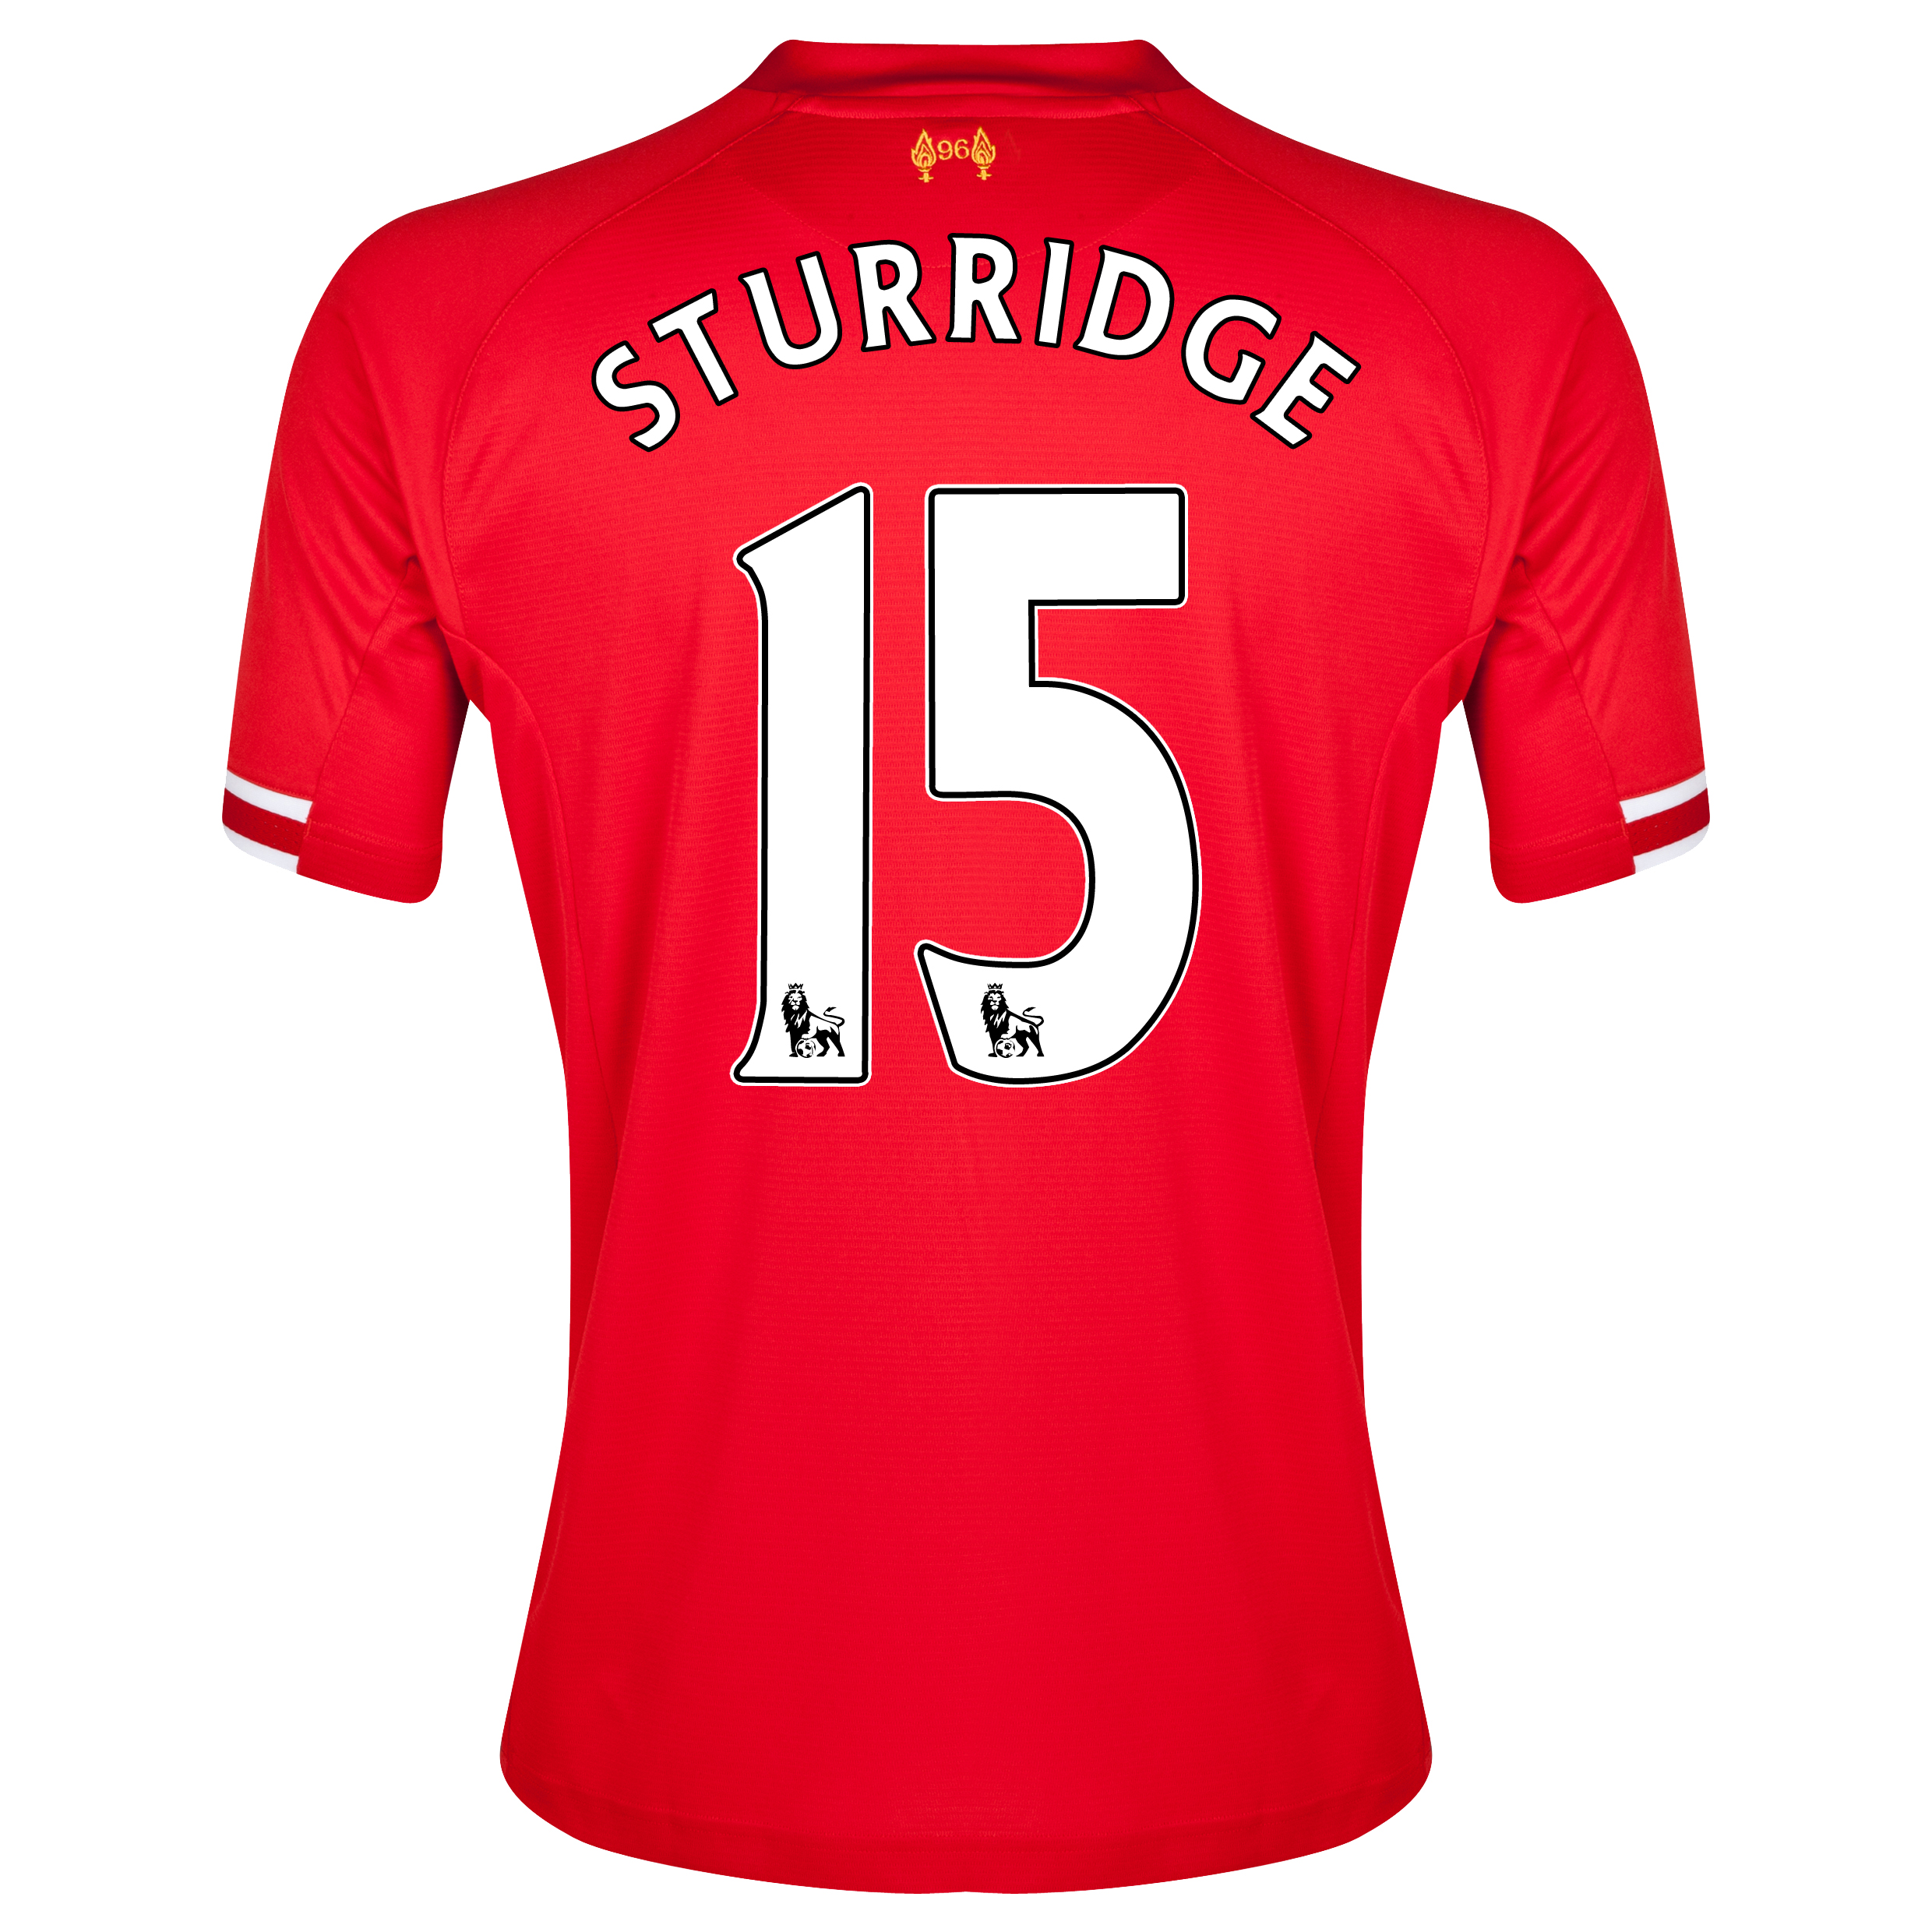 Liverpool Home Shirt 2013/14 with Sturridge 15 printing